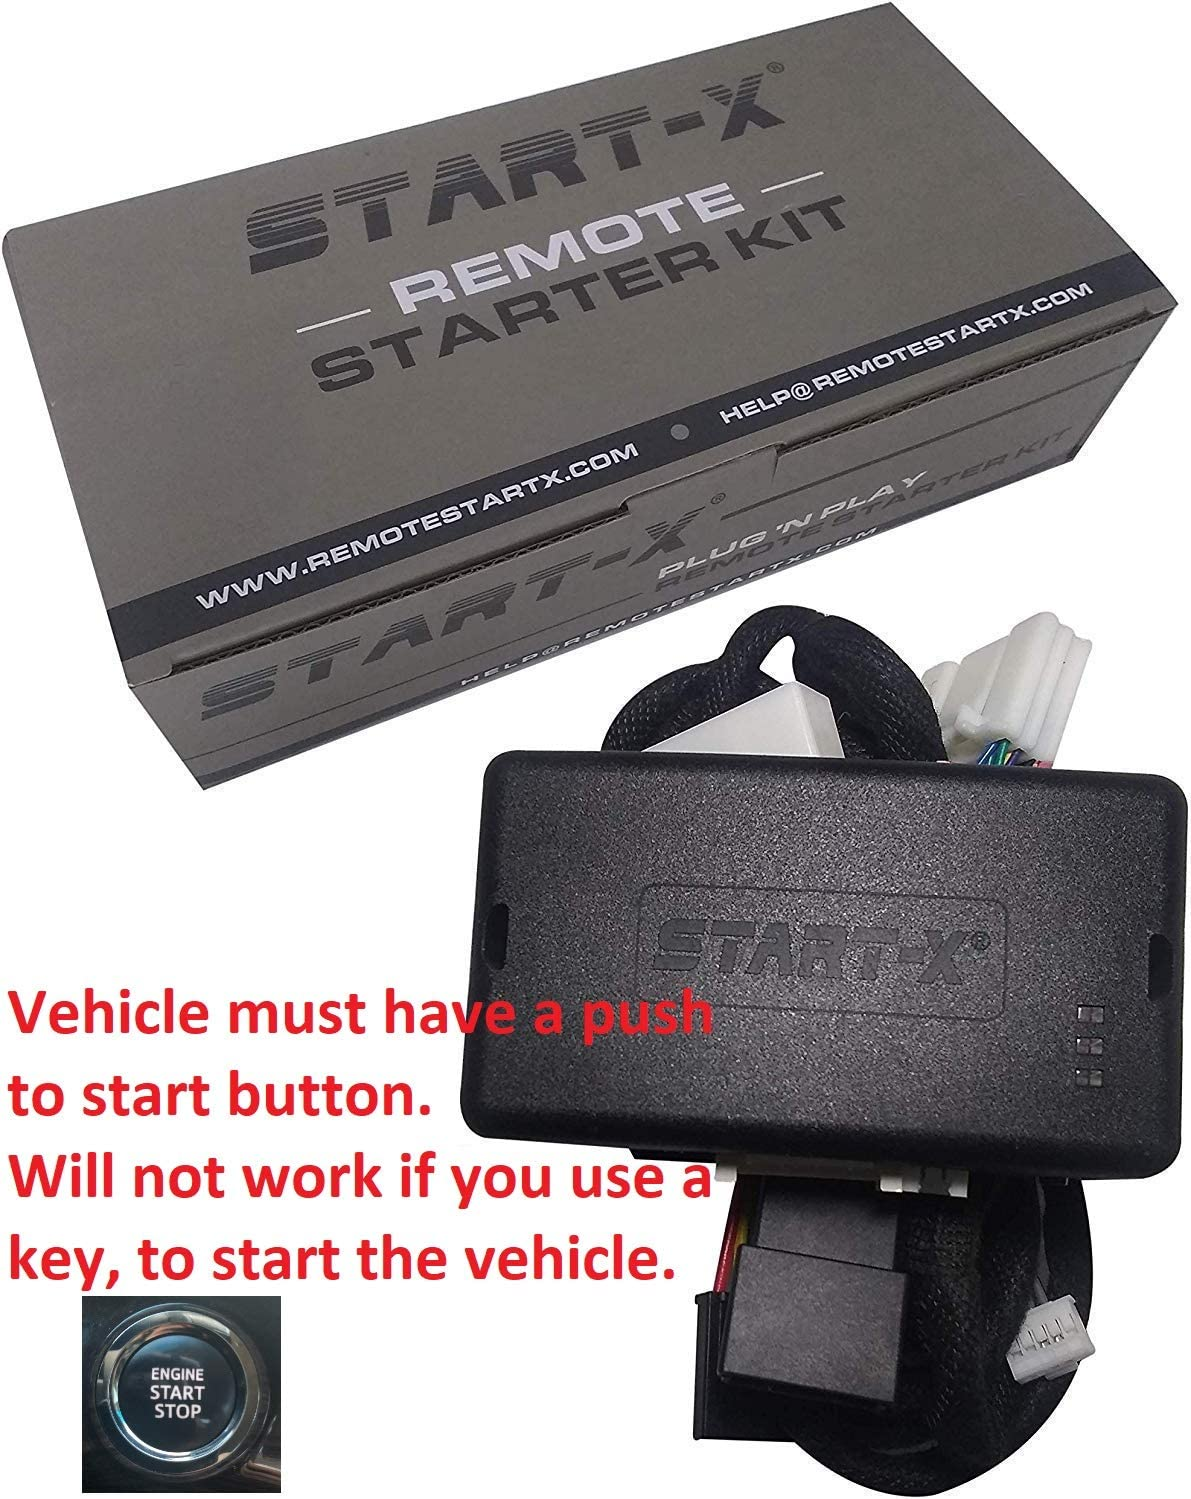 Lock 3X to Remote Start Push to Start Only Start-X Plug N Play Remote Starter for 4Runner 2010-19 Sienna 2011-2019